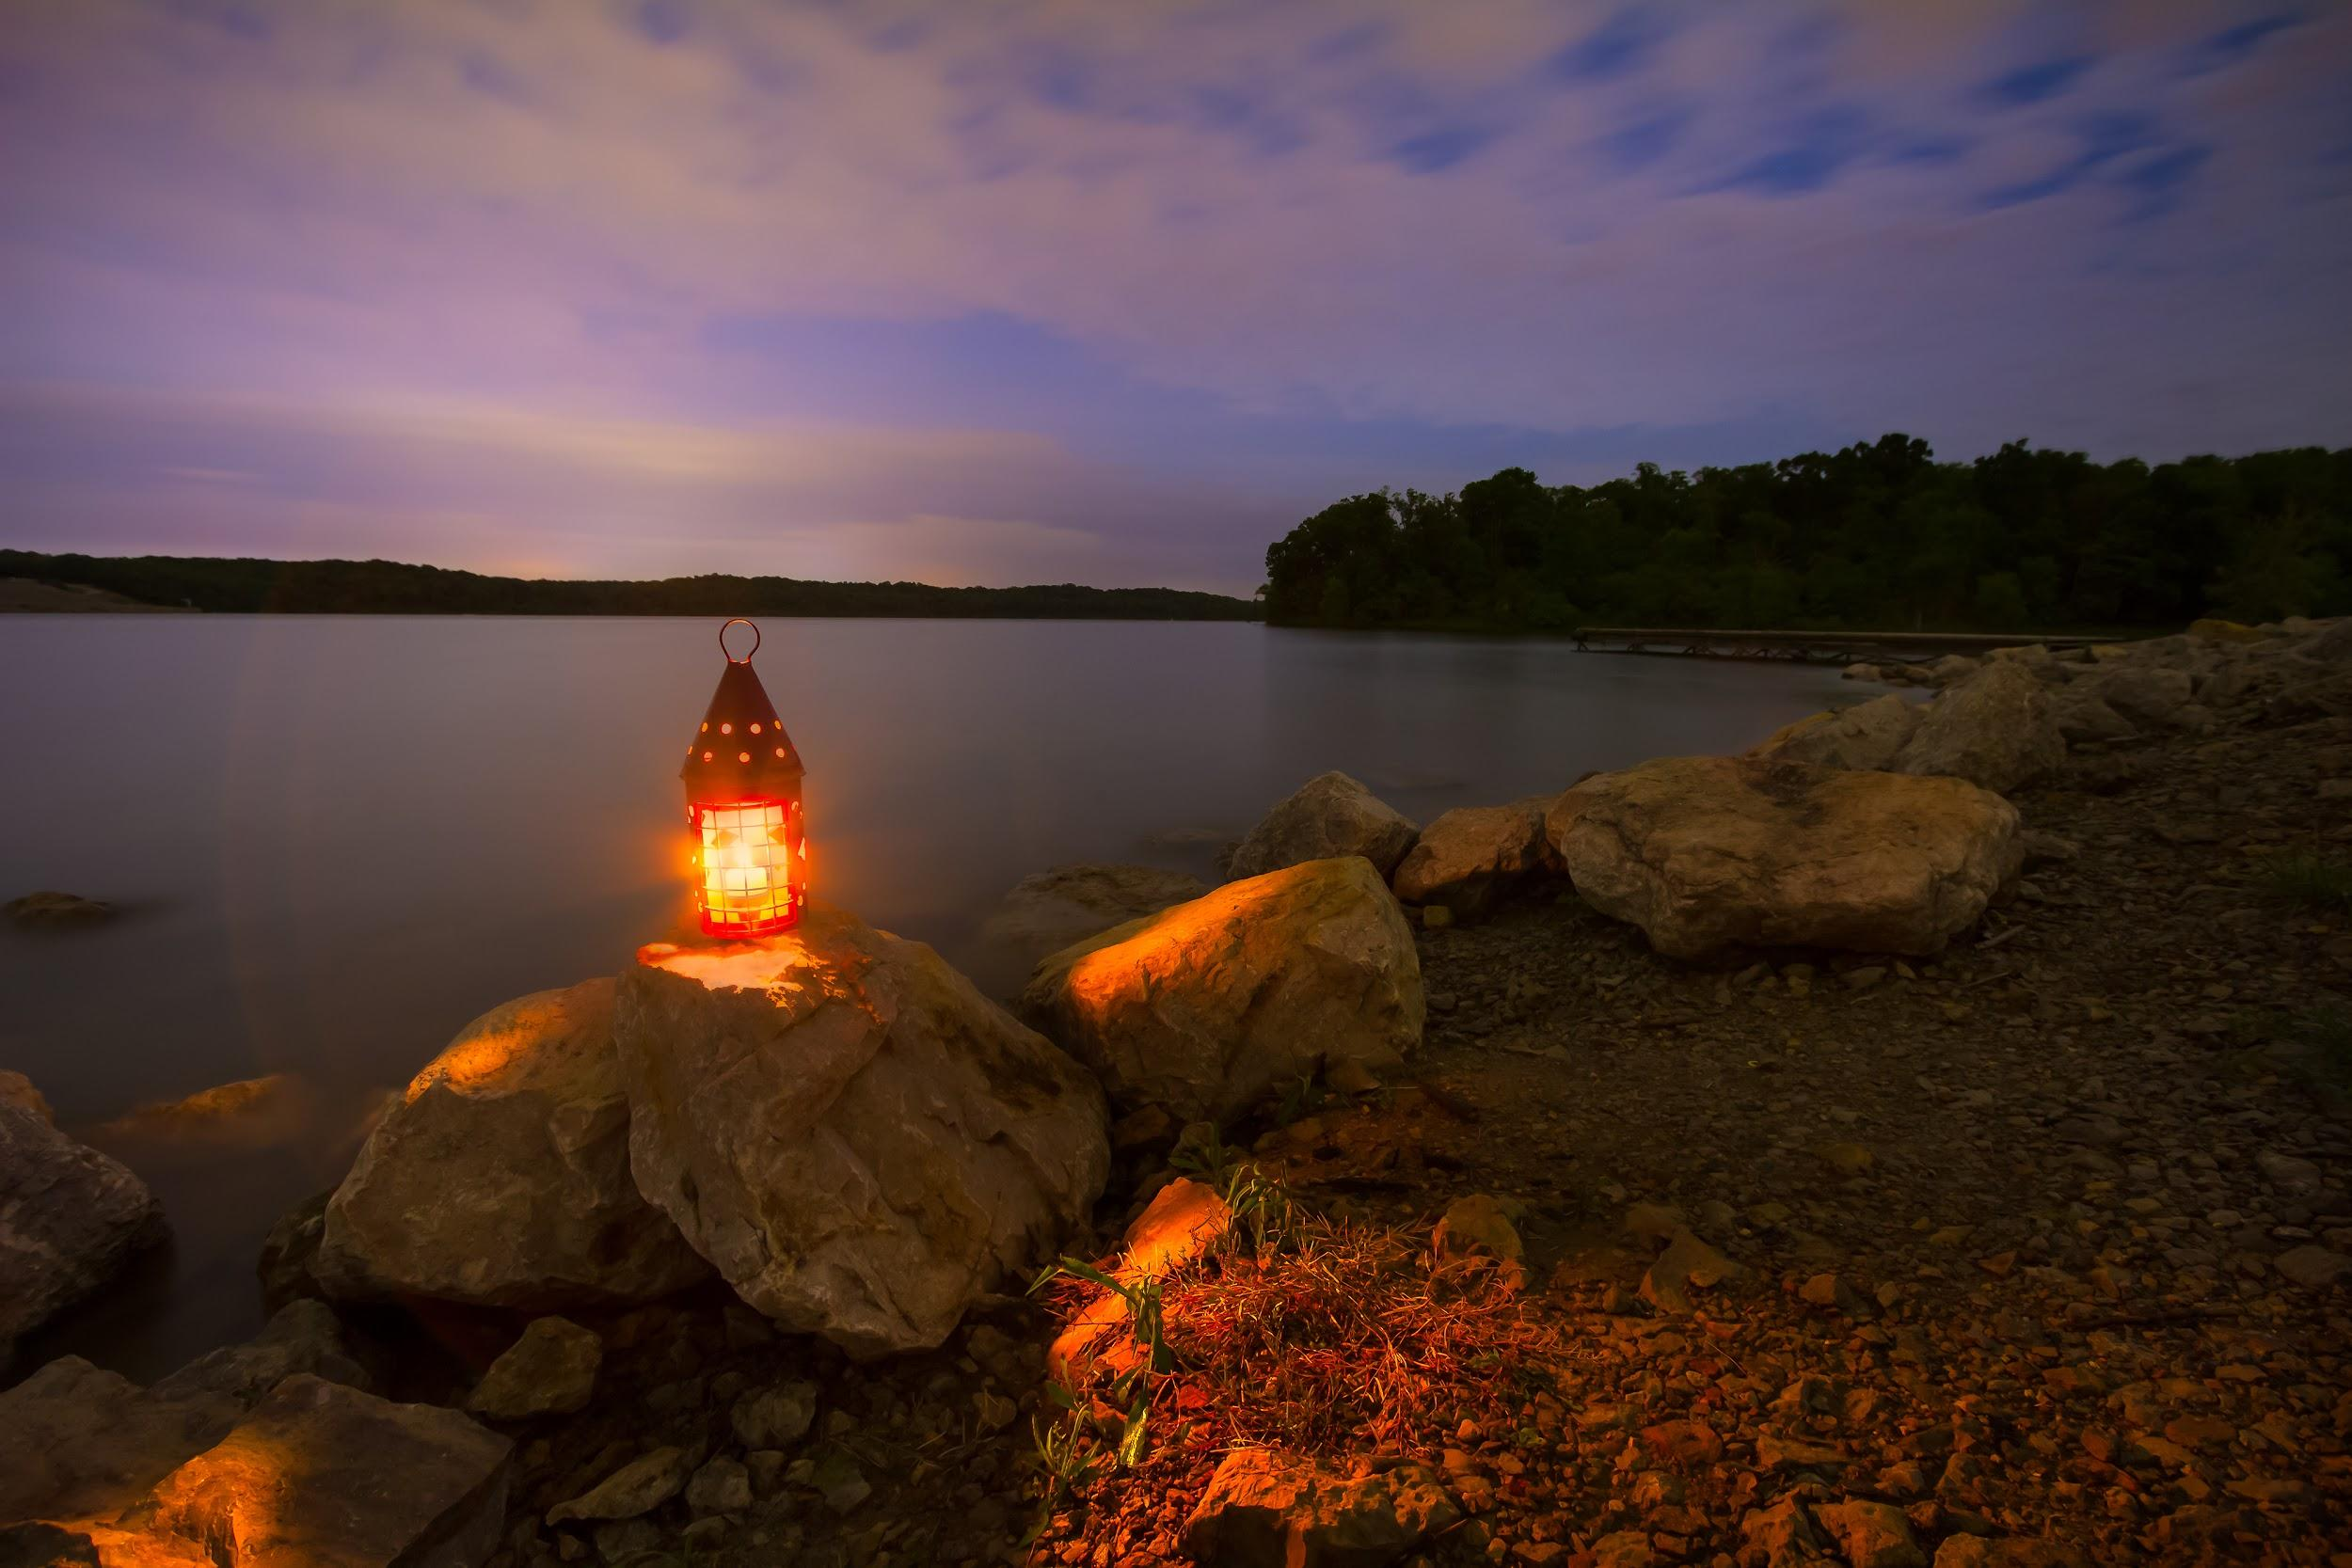 Choosing the Best Lantern for Your Camping Adventures